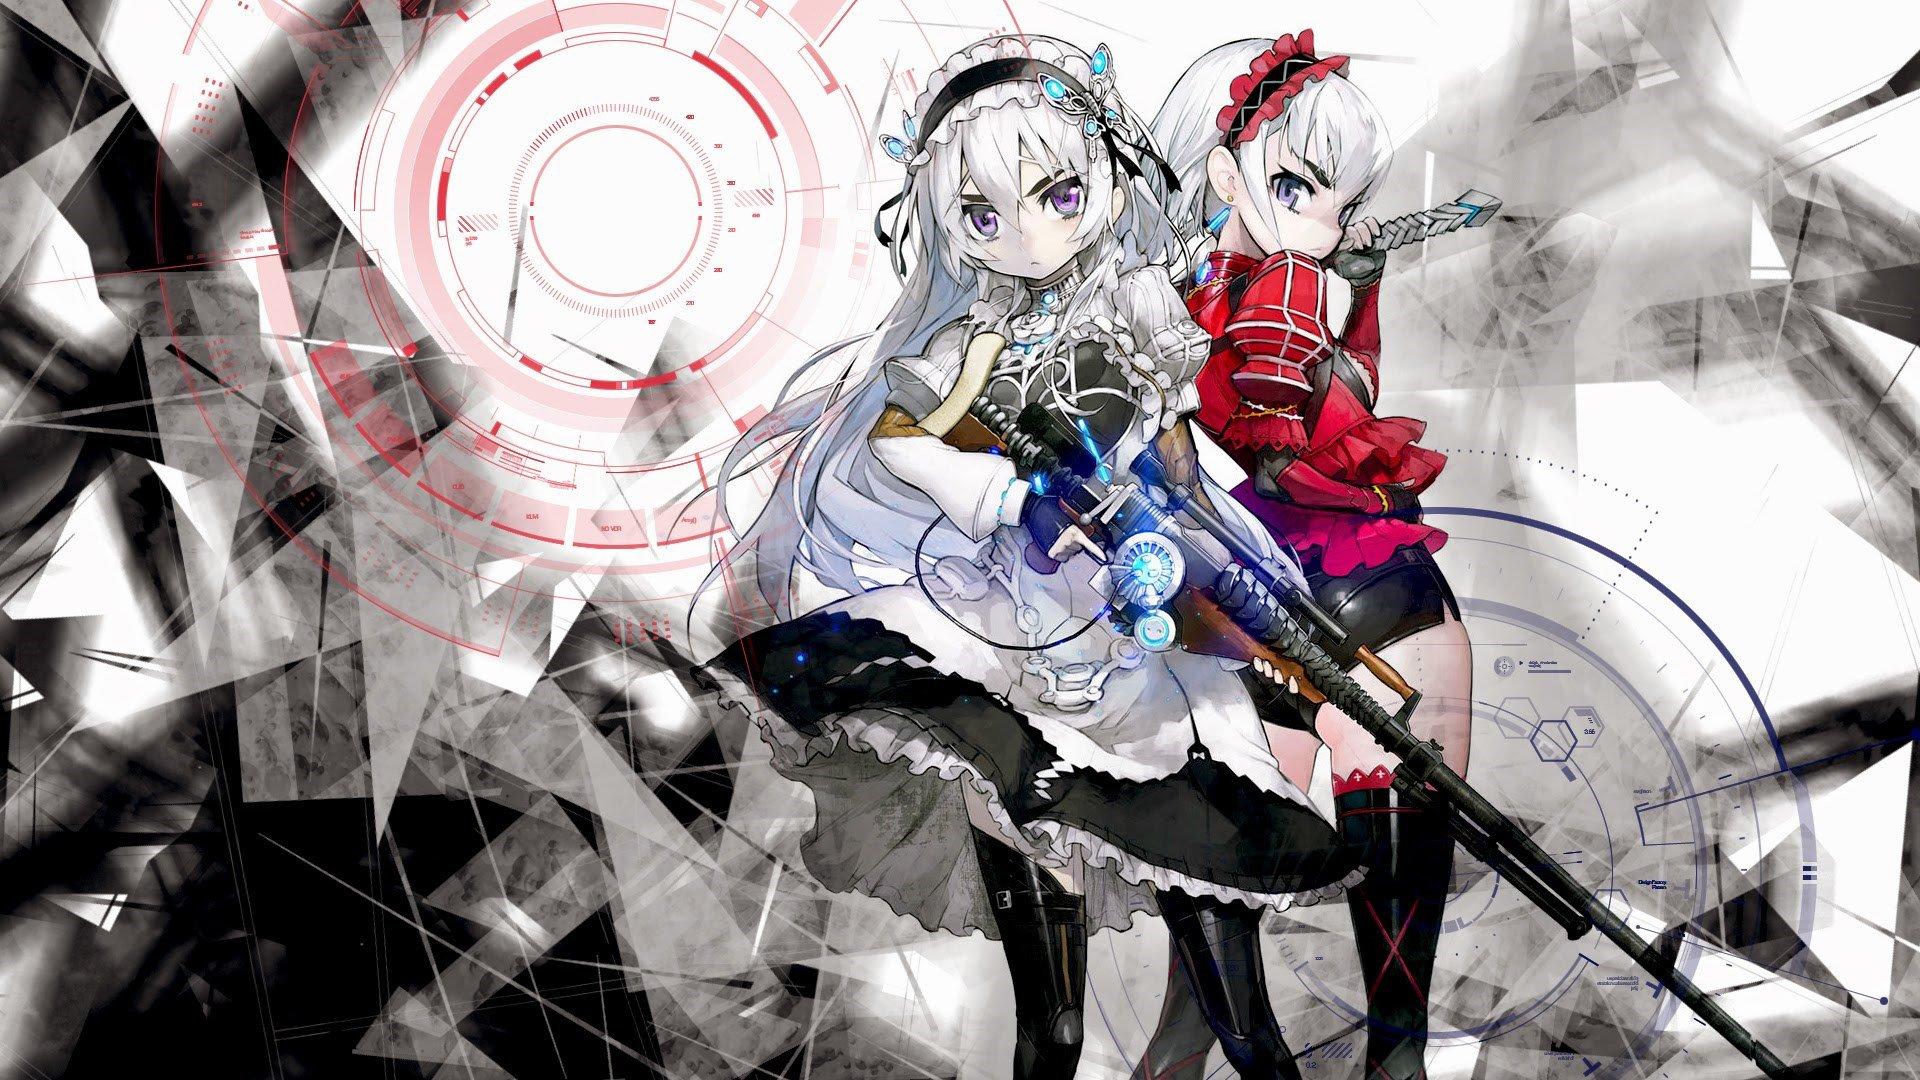 42 Chaika  The Coffin Princess  HD Wallpapers Background Images 1920x1080